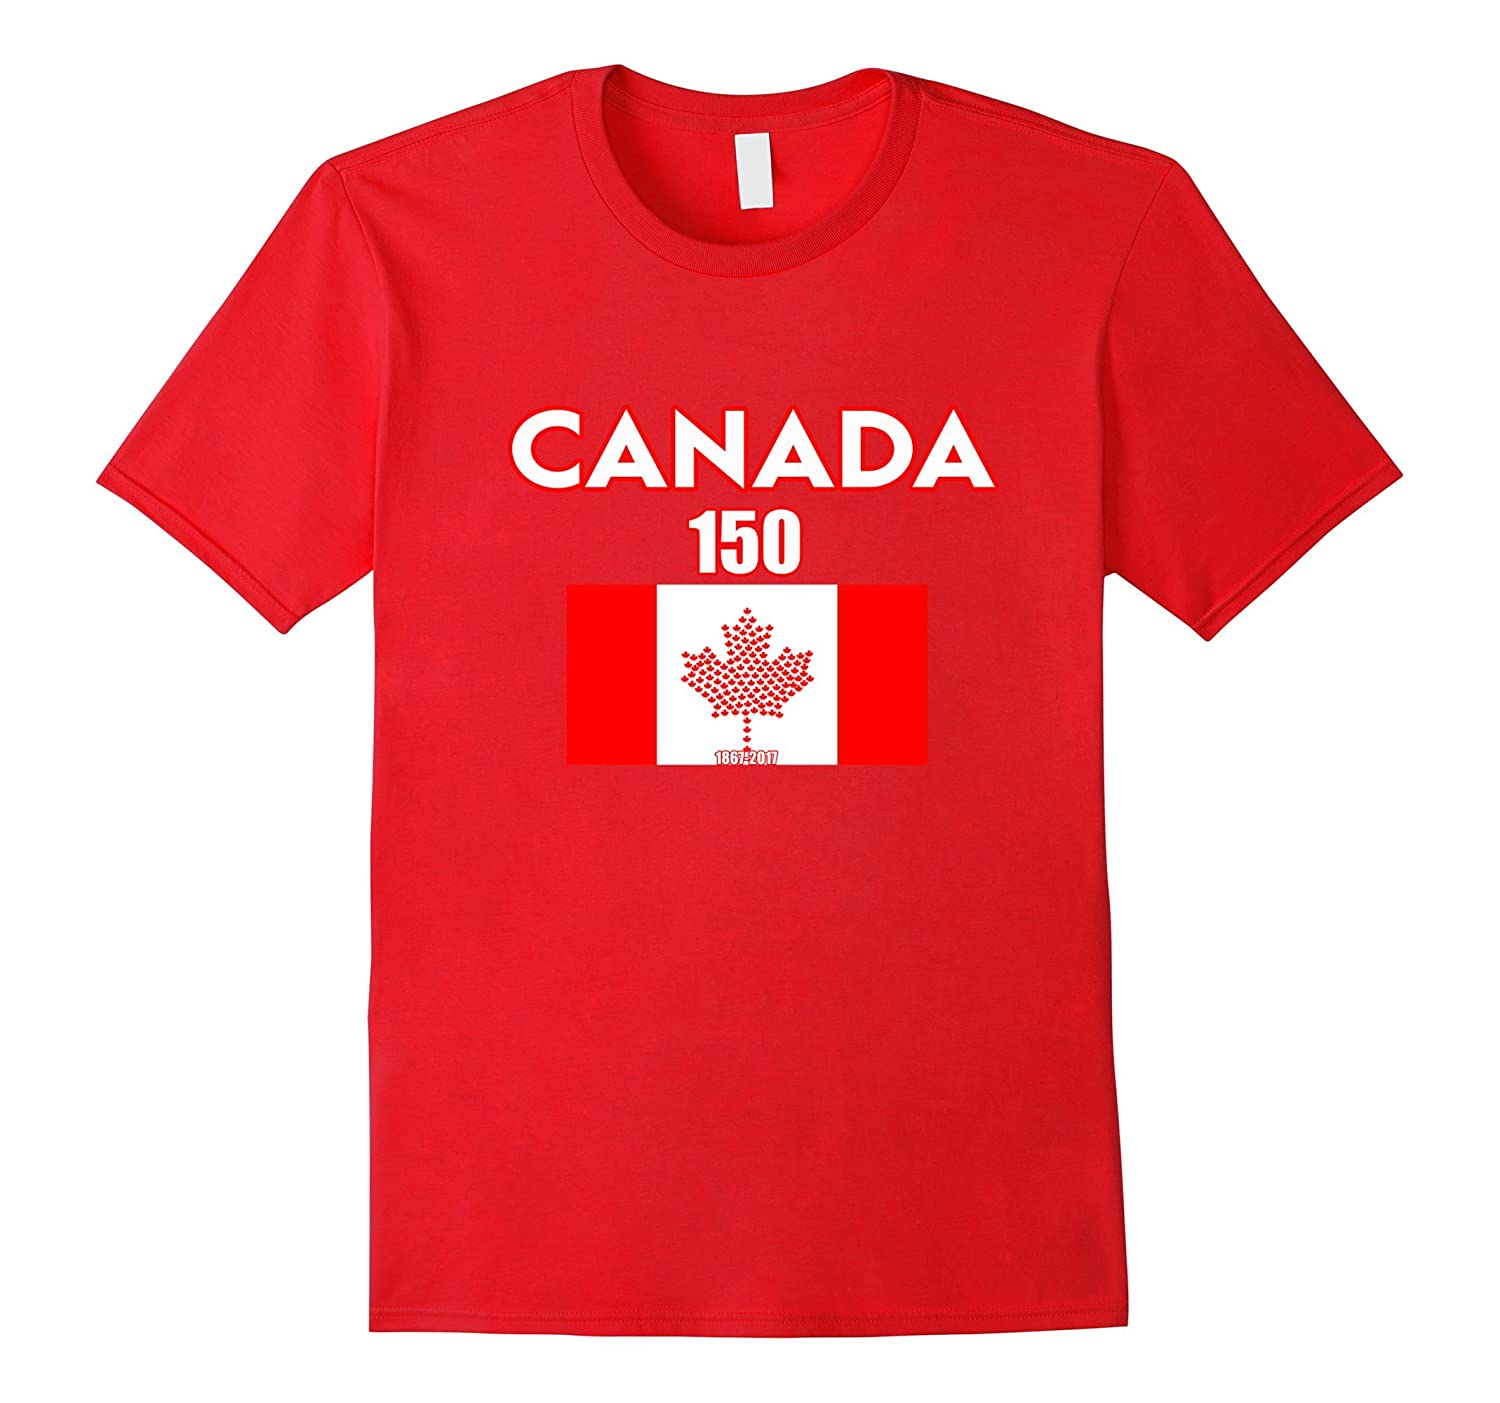 CANADA 150 Years 1867-2017 Shirt Canadian Flag T-shirts-PL